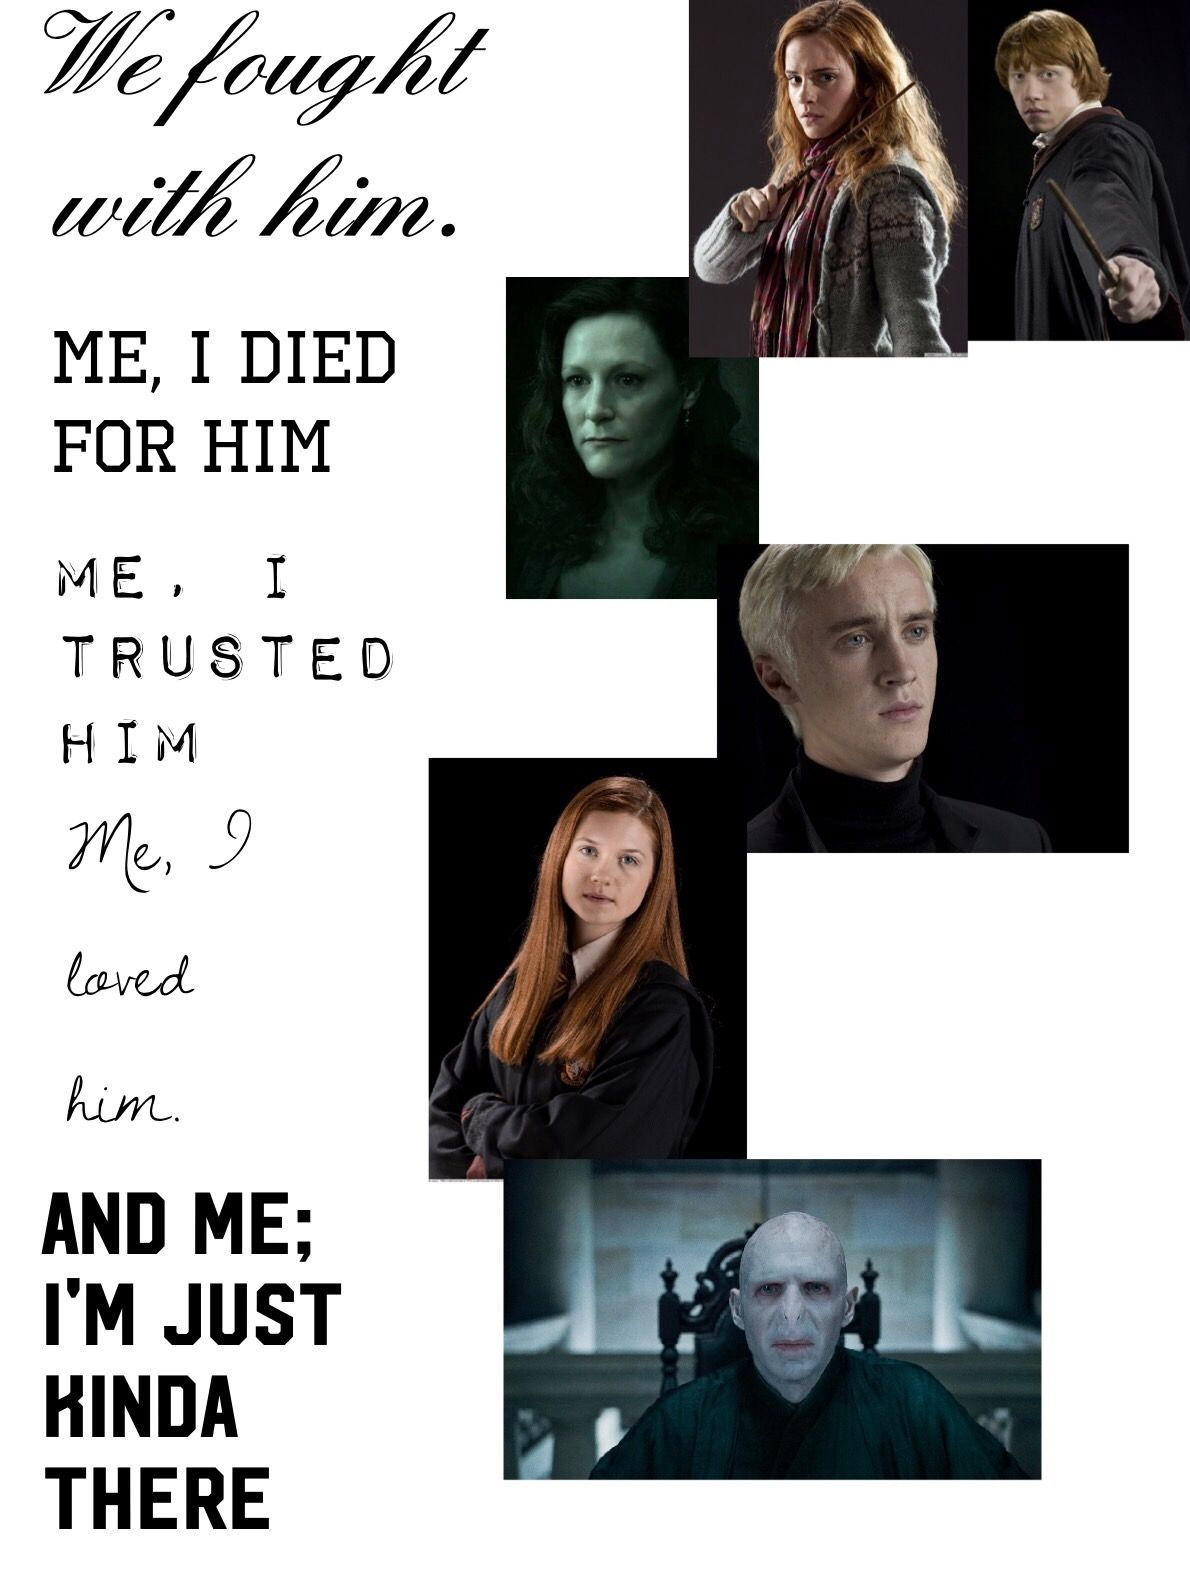 Pin By Maggie Mack On Potter For Ham Harry Potter Feels Harry Potter Obsession Harry Potter Crossover